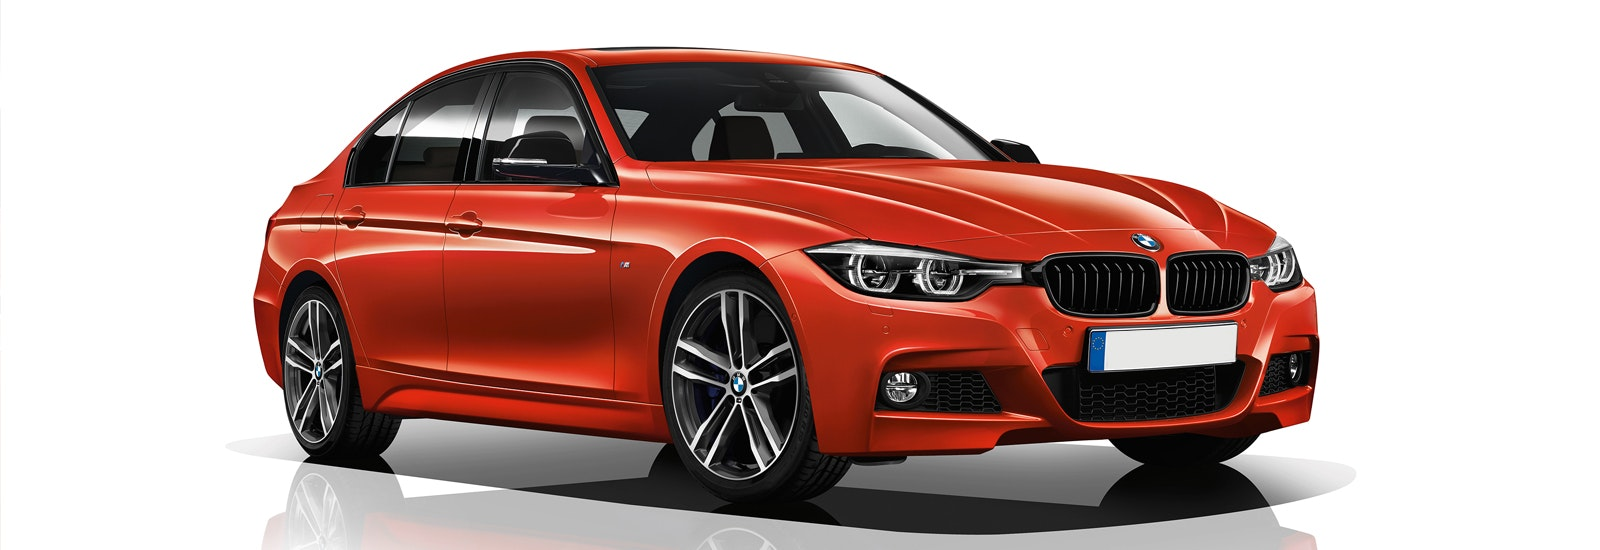 2017 Bmw 3 Series Editions Complete Guide Carwow